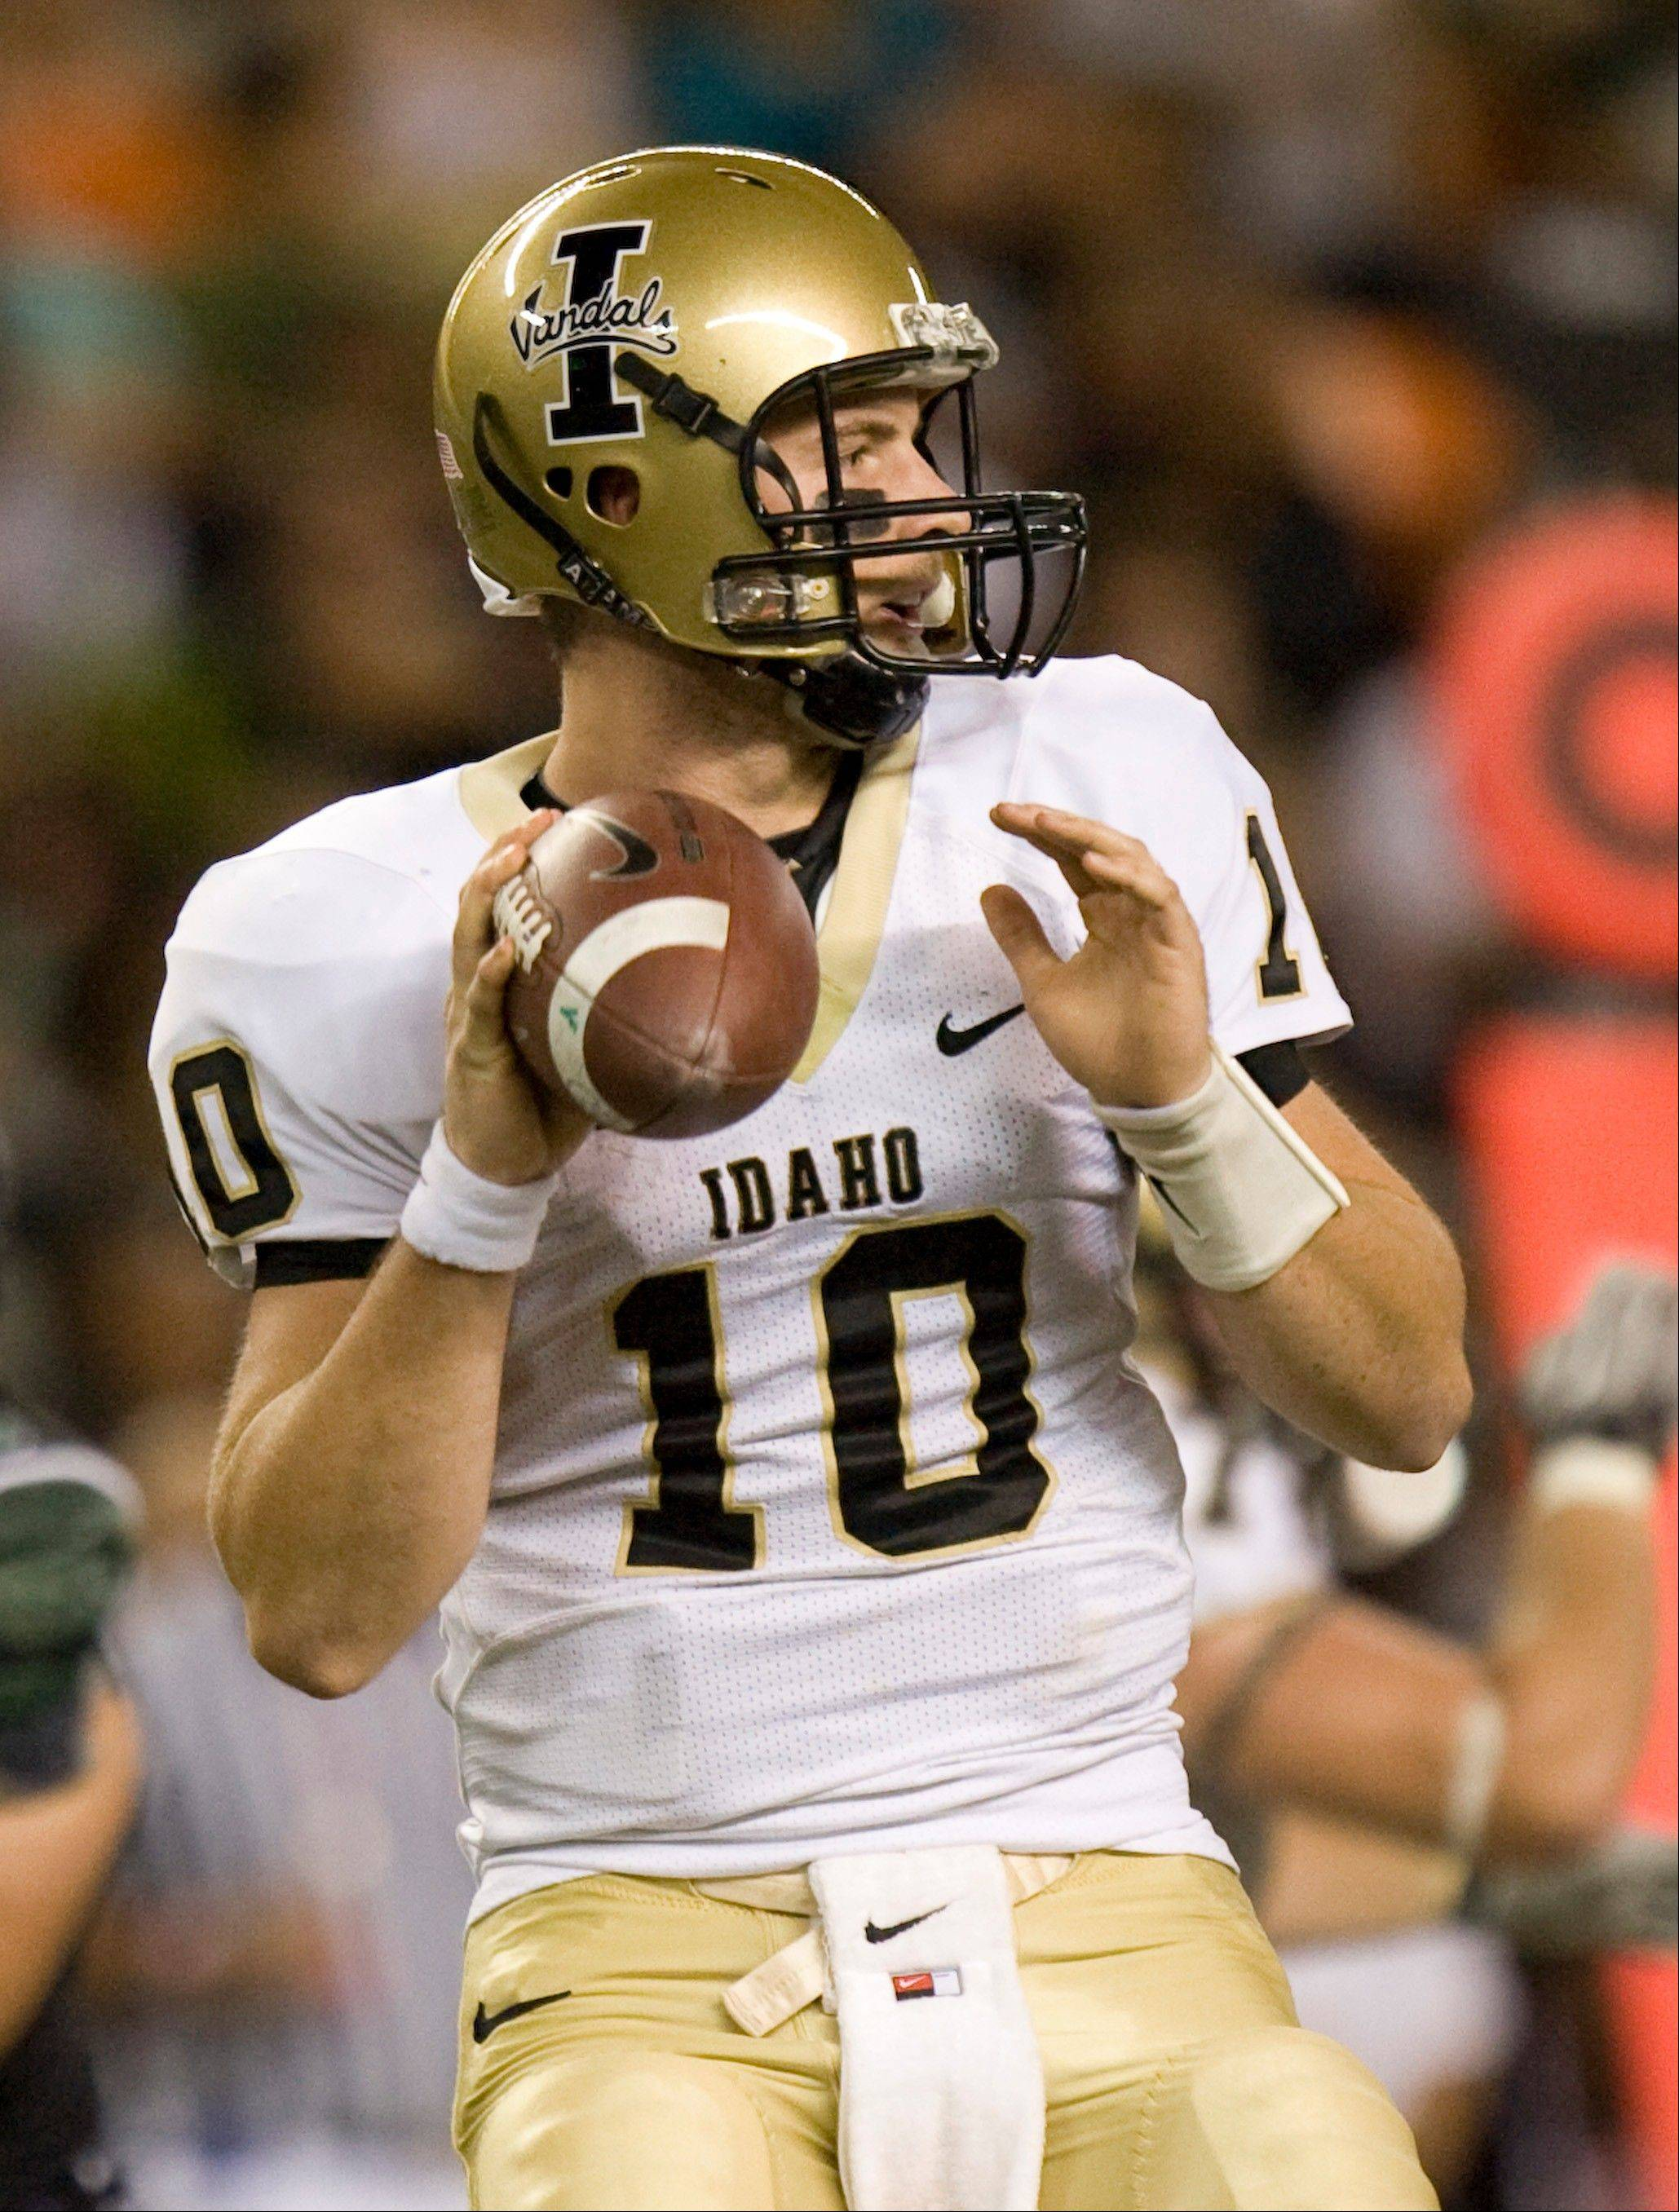 Idaho quarterback Nathan Enderle has signed a four-year contract with the Bears, who picked him in the fifth-round of the April�s NFL Draft.